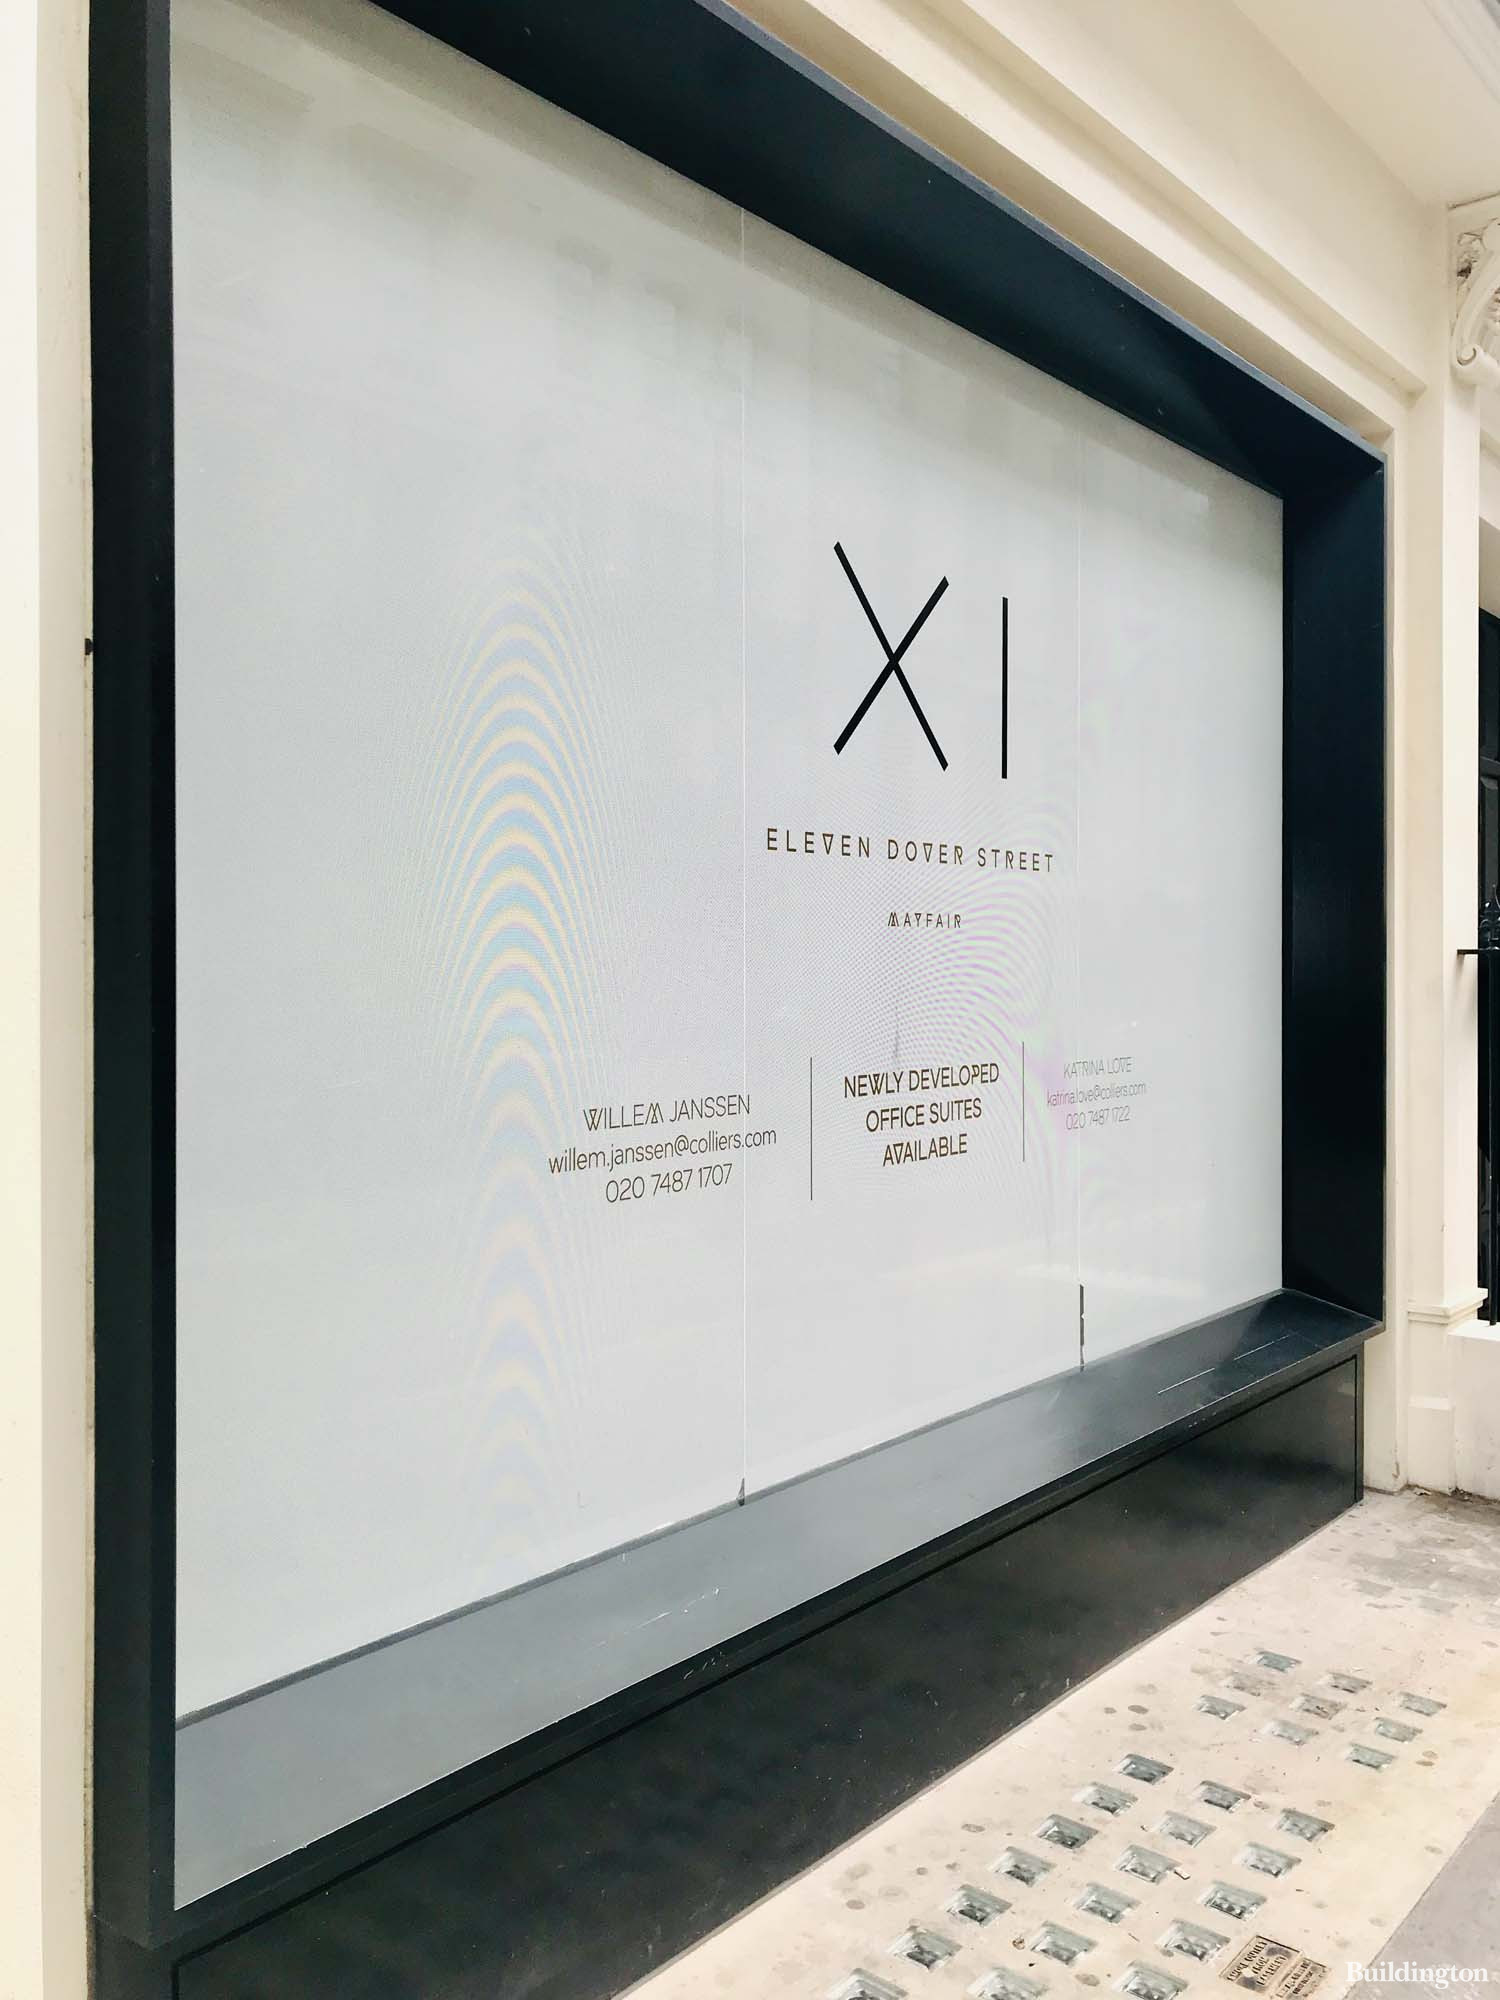 XI Dover Street - Eleven Dover Street. New developed office suites available, advertised by Colliers.